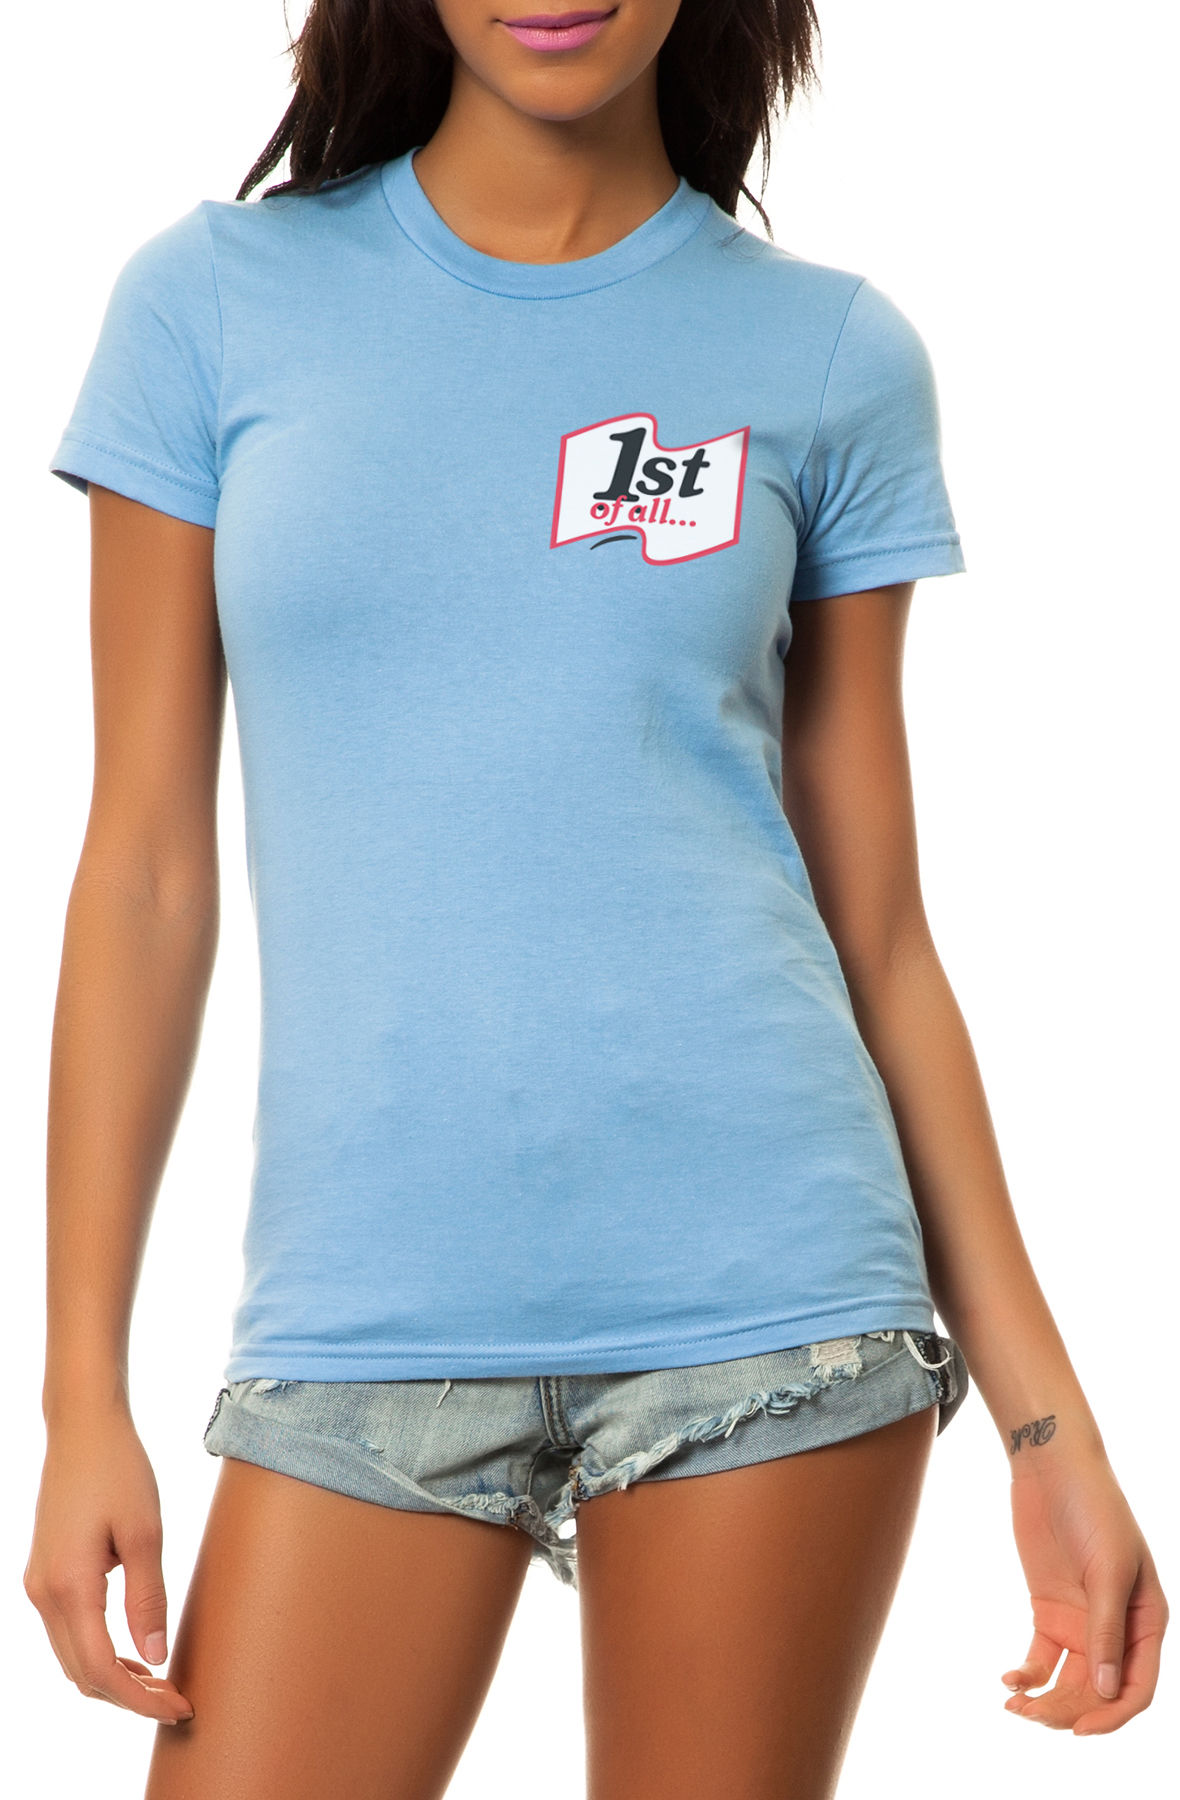 Image of The 1st of All Tee in Baby Blue